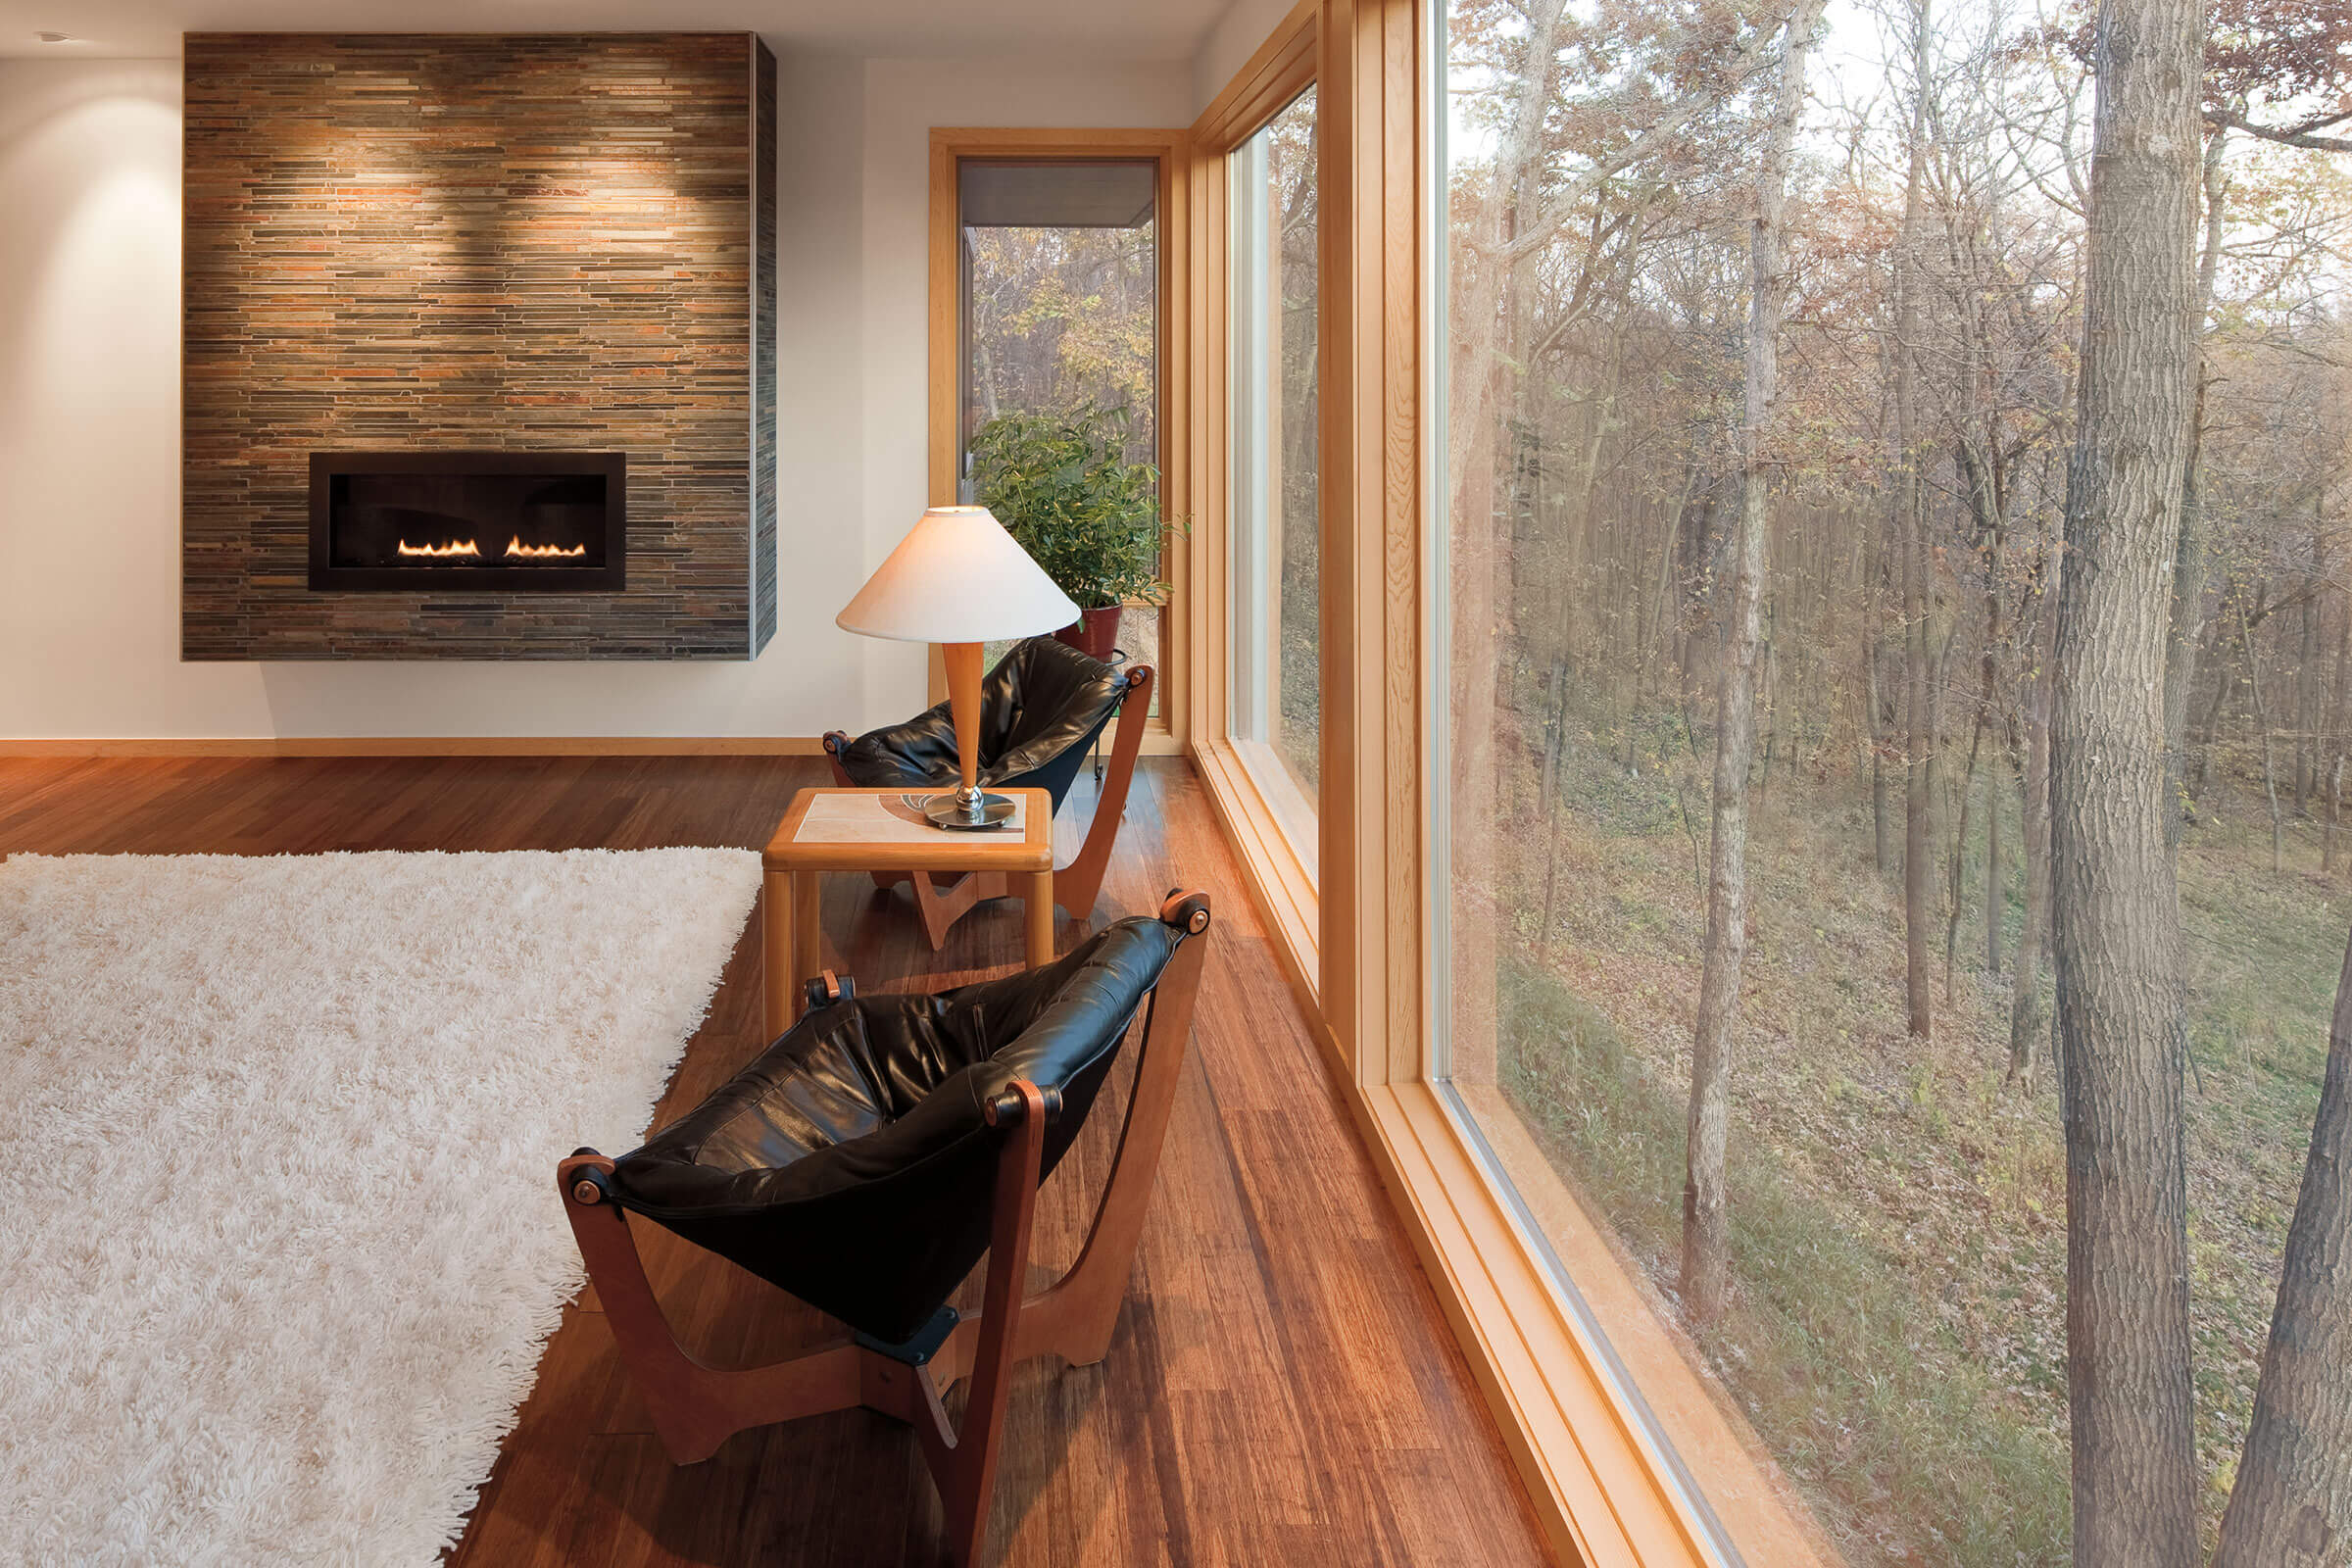 Living Room With View Of Trees Through Signature Ultimate Picture Window